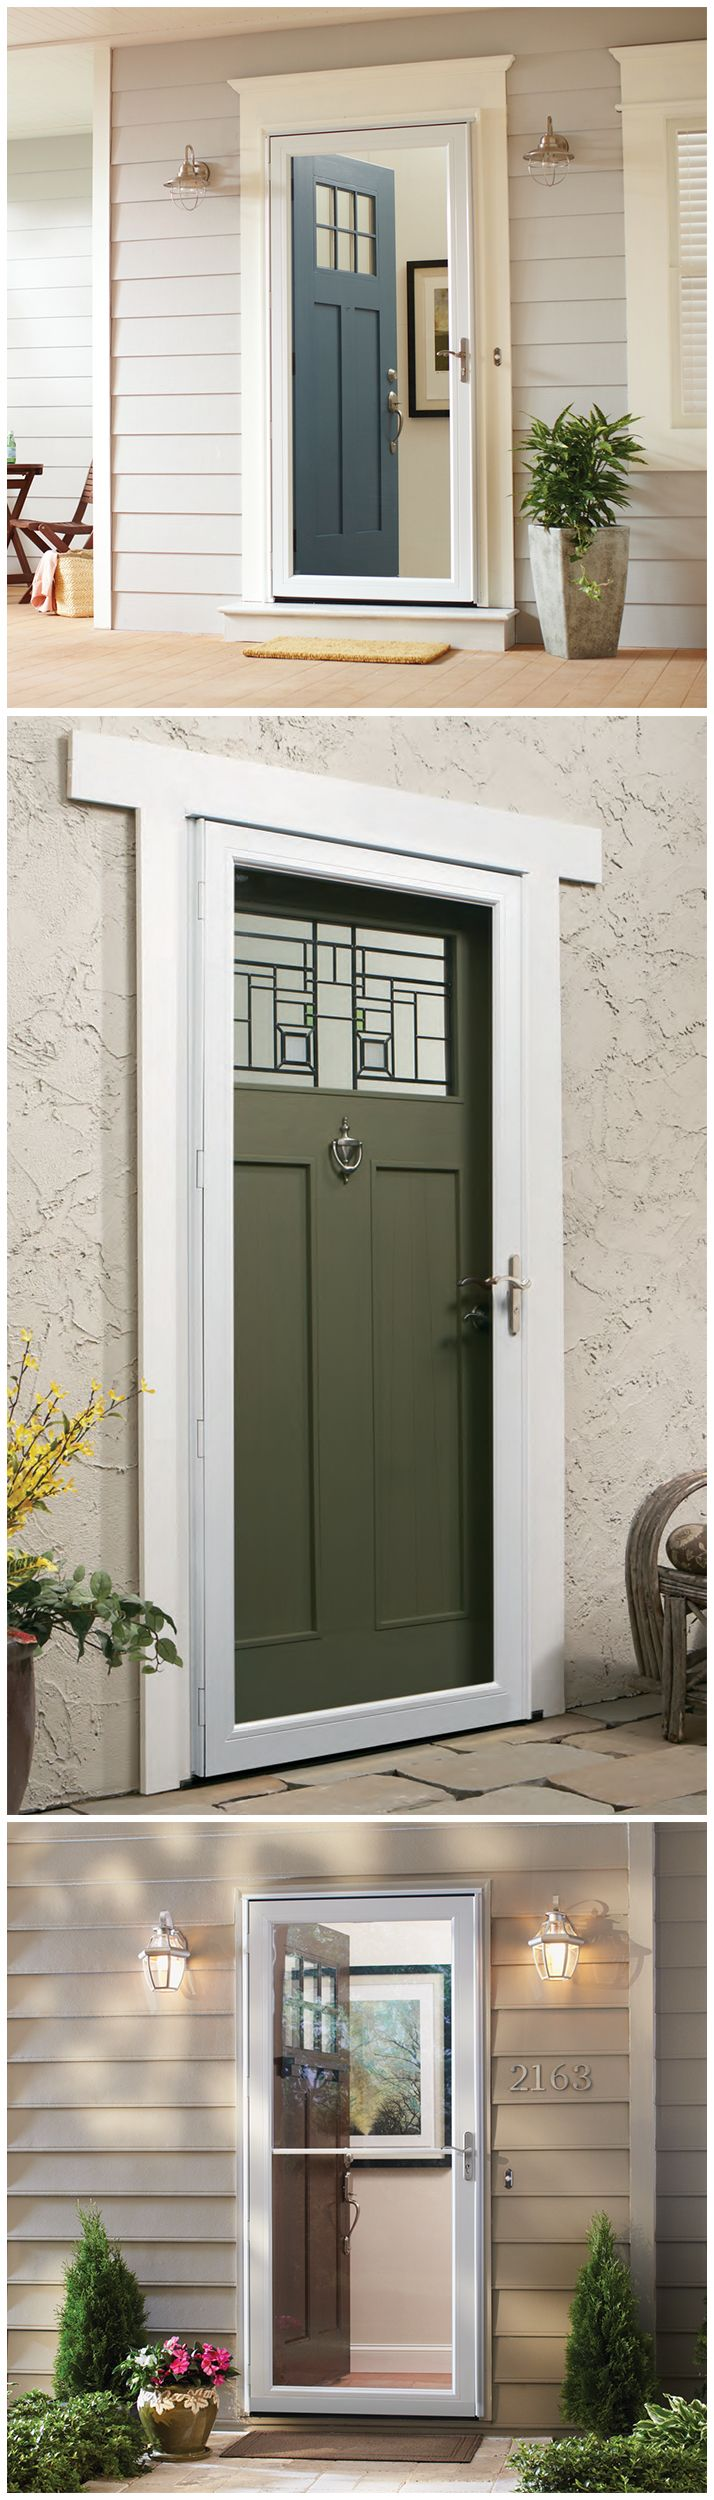 Andersen easy-install storm doors are prepped for quick ...